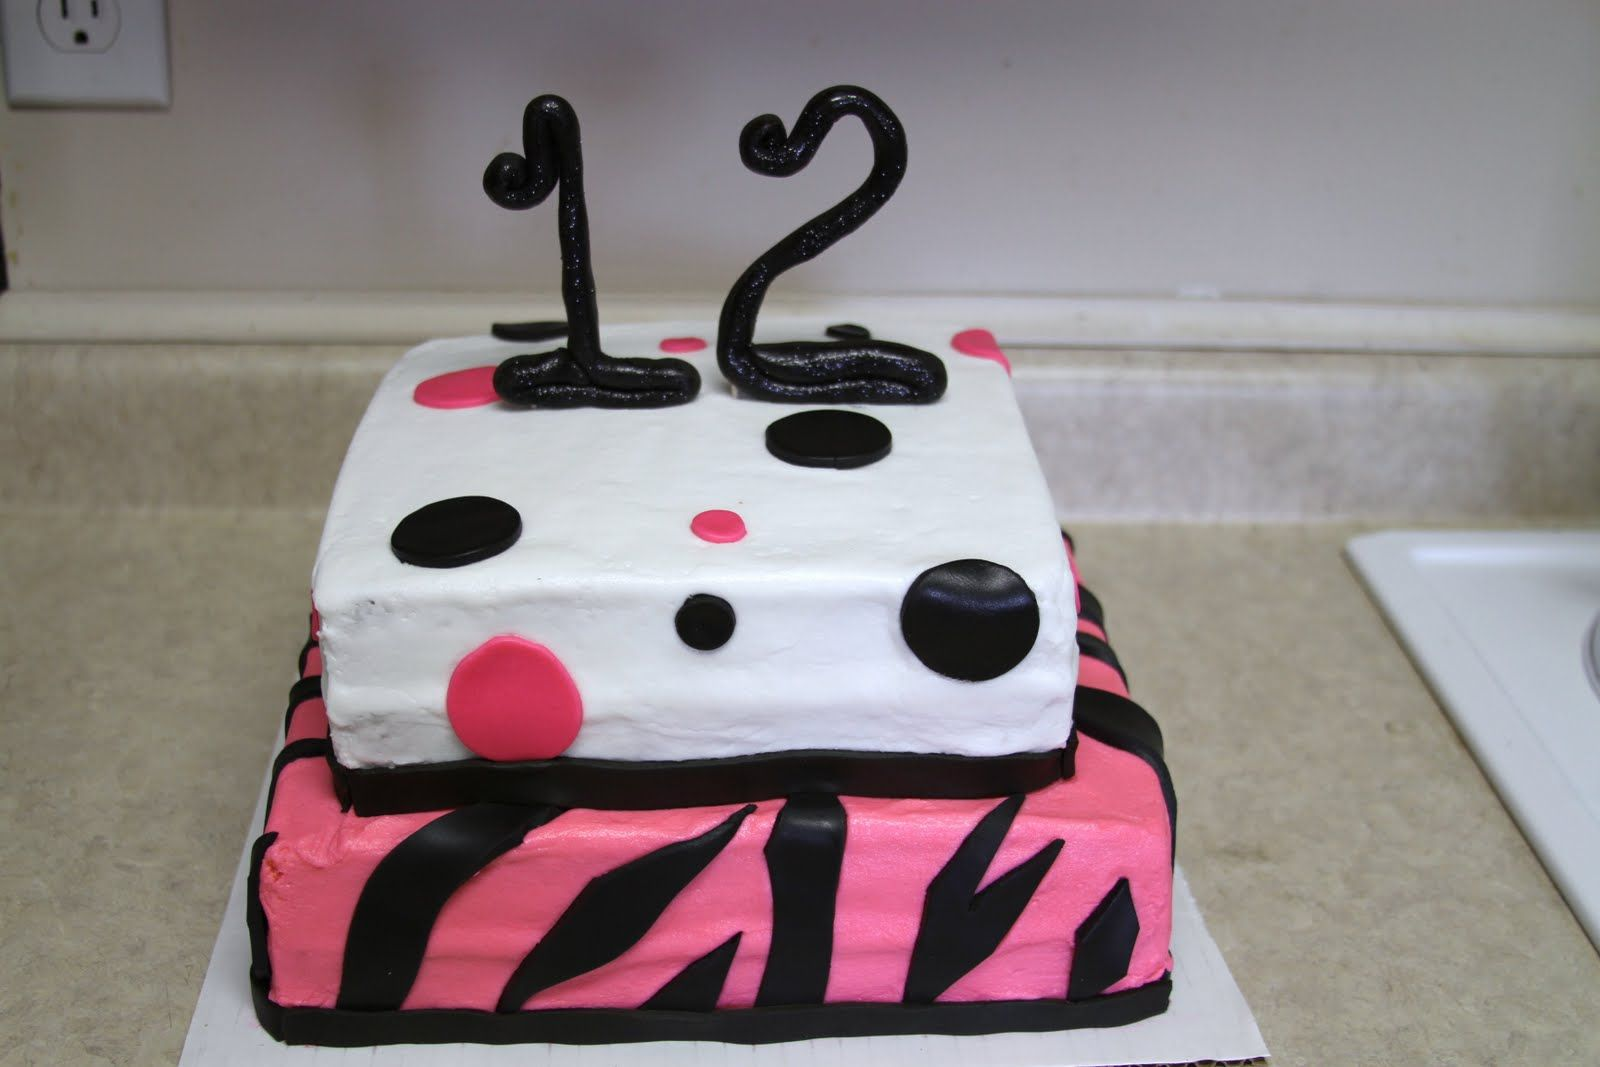 Zebra Poka Dot 12th Birthday Cake 12th Birthday Cake Cake